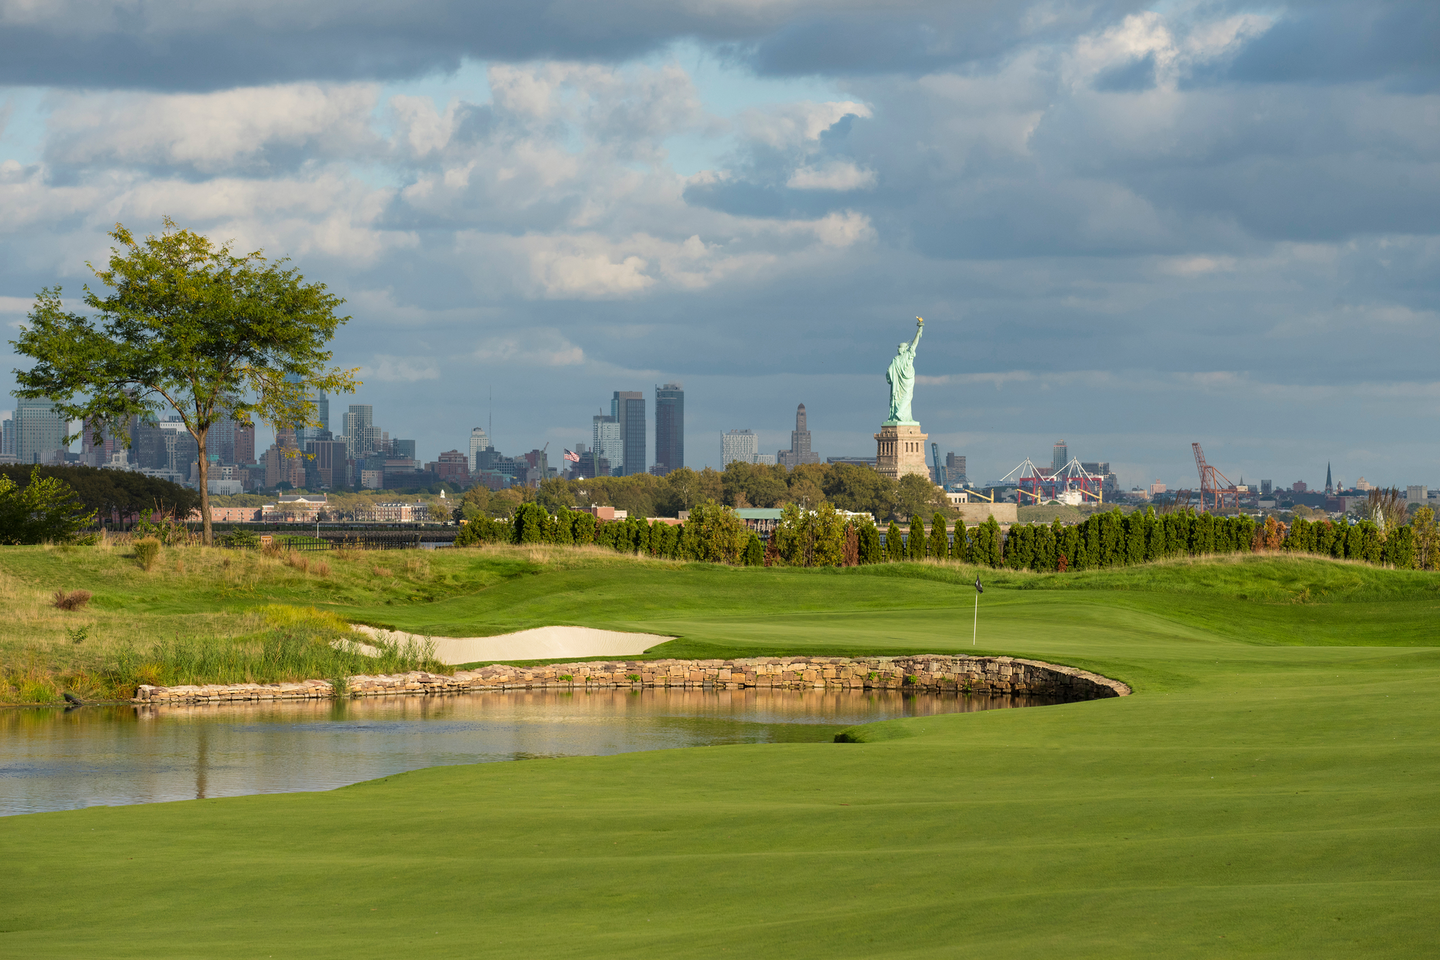 At the Liberty National Golf Club in Jersey City, N.J., the final round of The Northern Trust tournament was postponed from Sunday to Monday, due to the heavy rain.